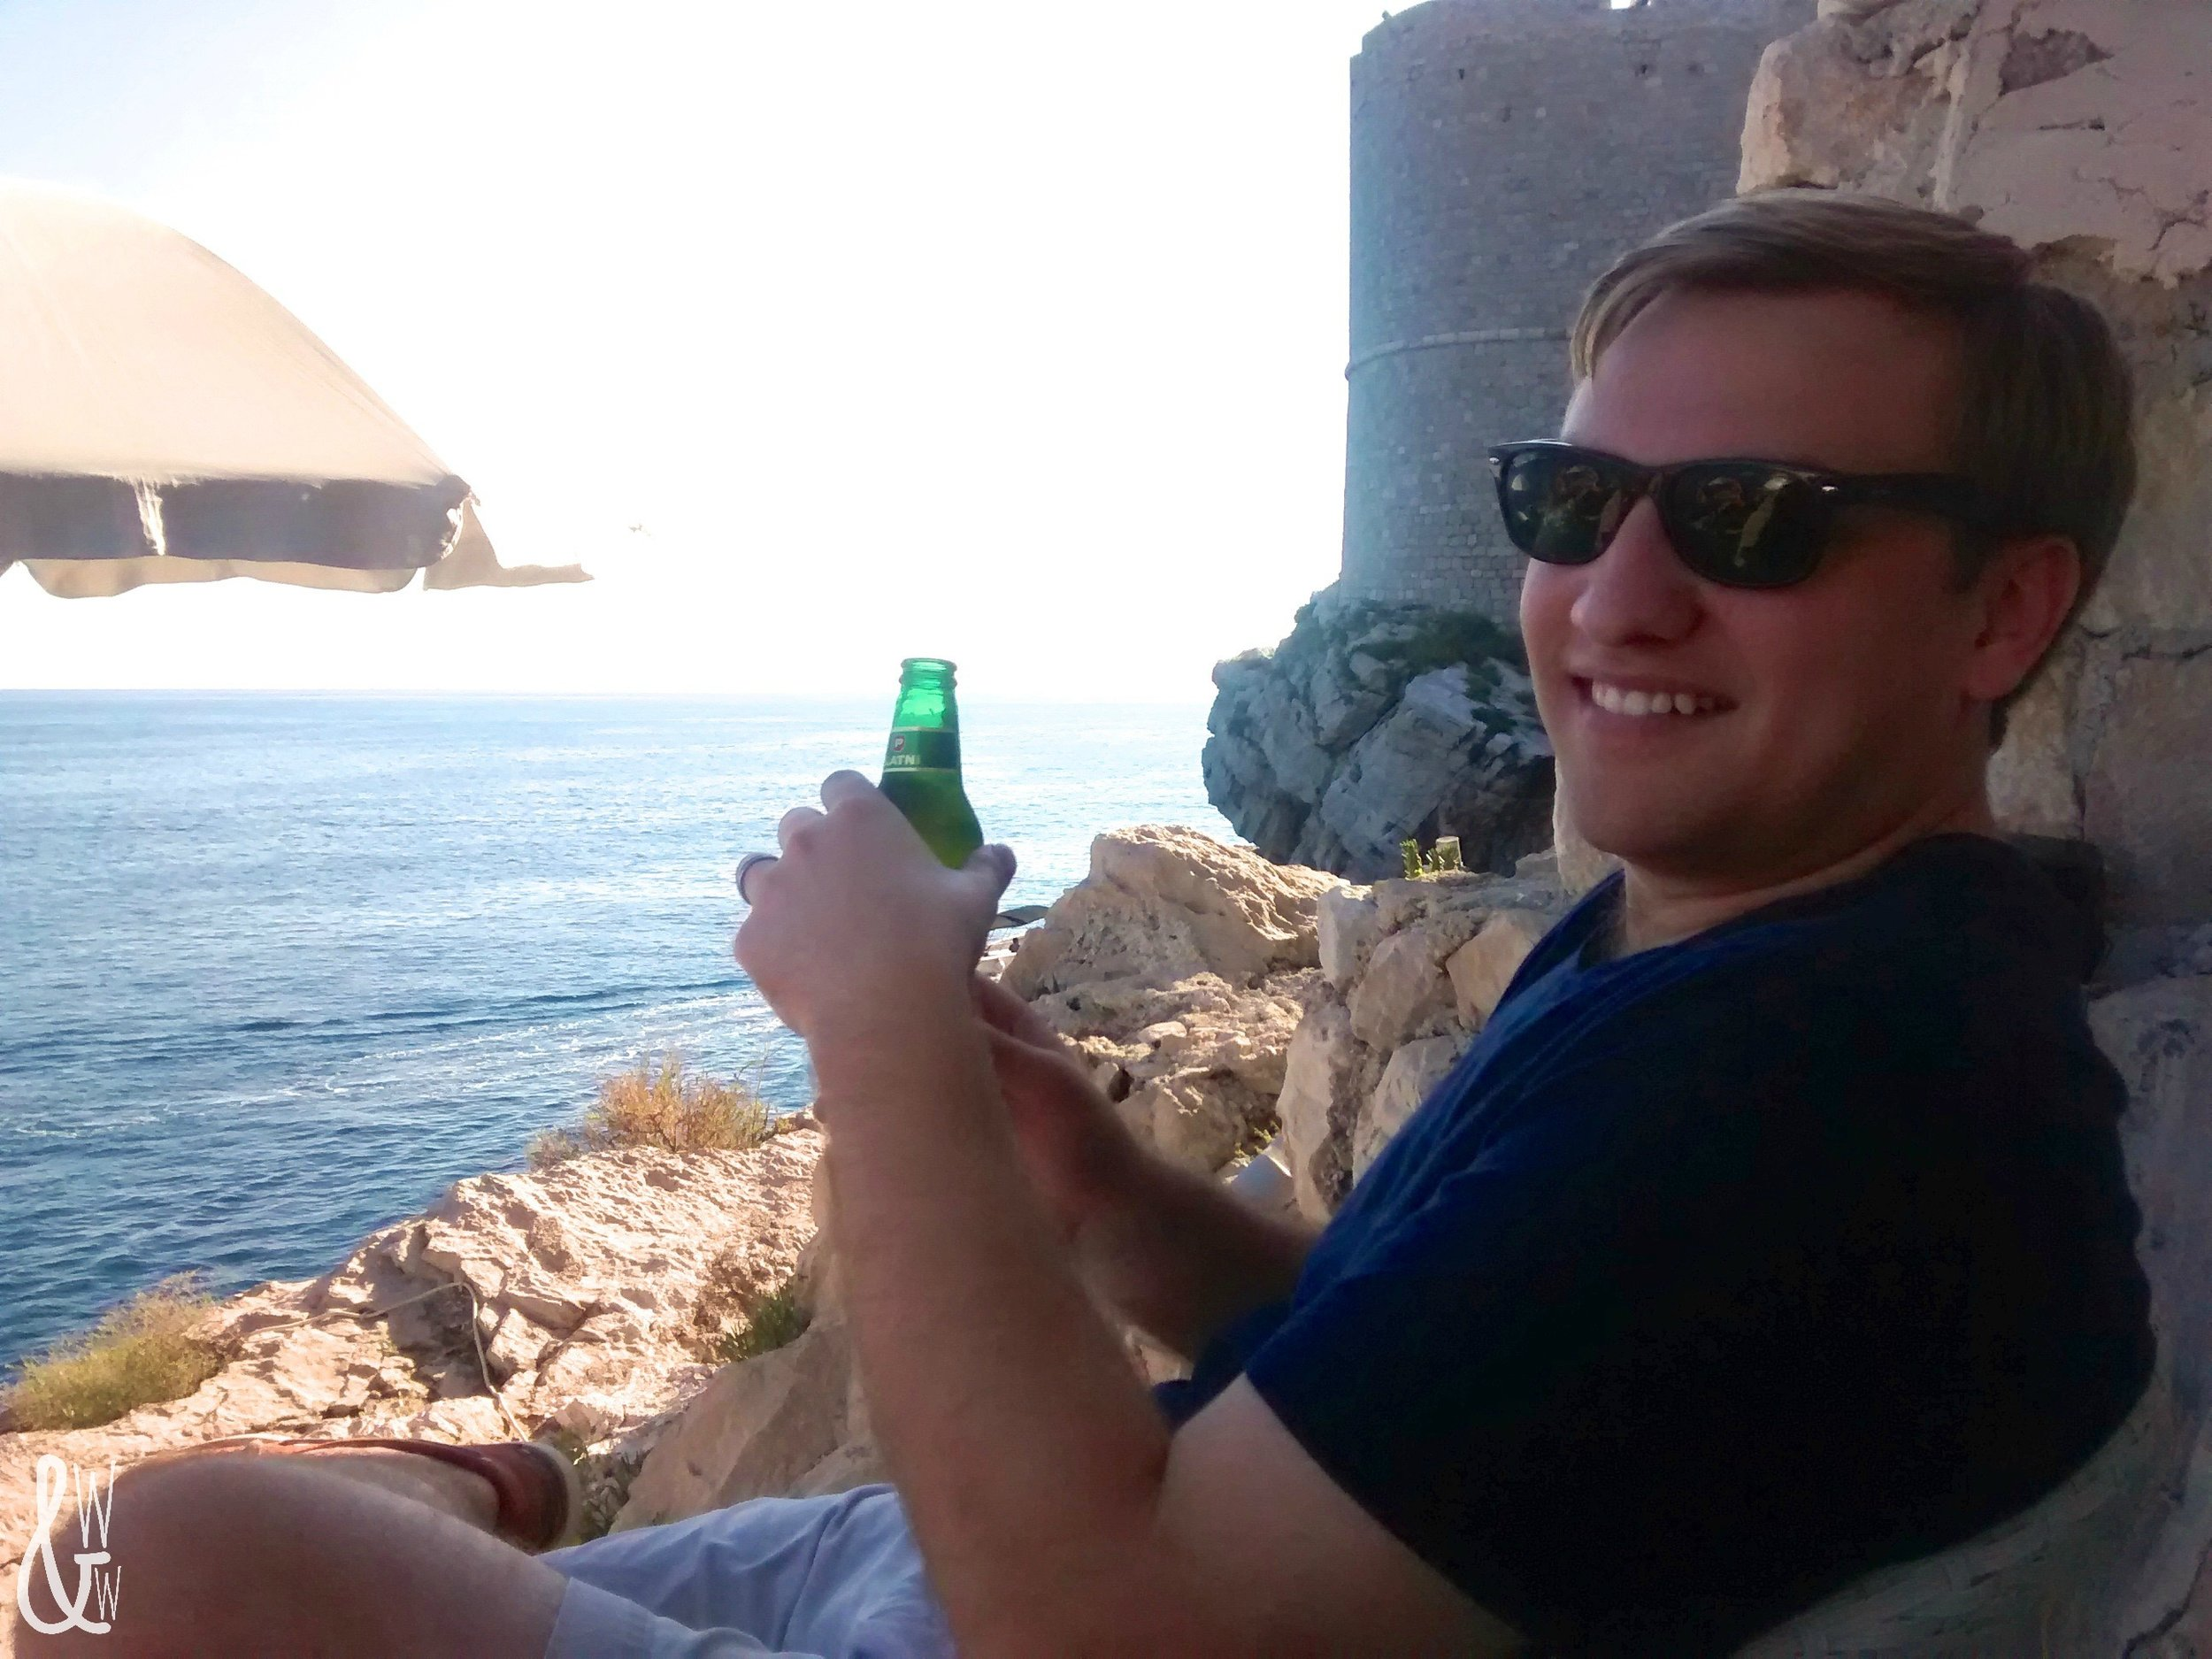 Soaking up the sun at Cafe Buza | Dubrovnik | Croatia